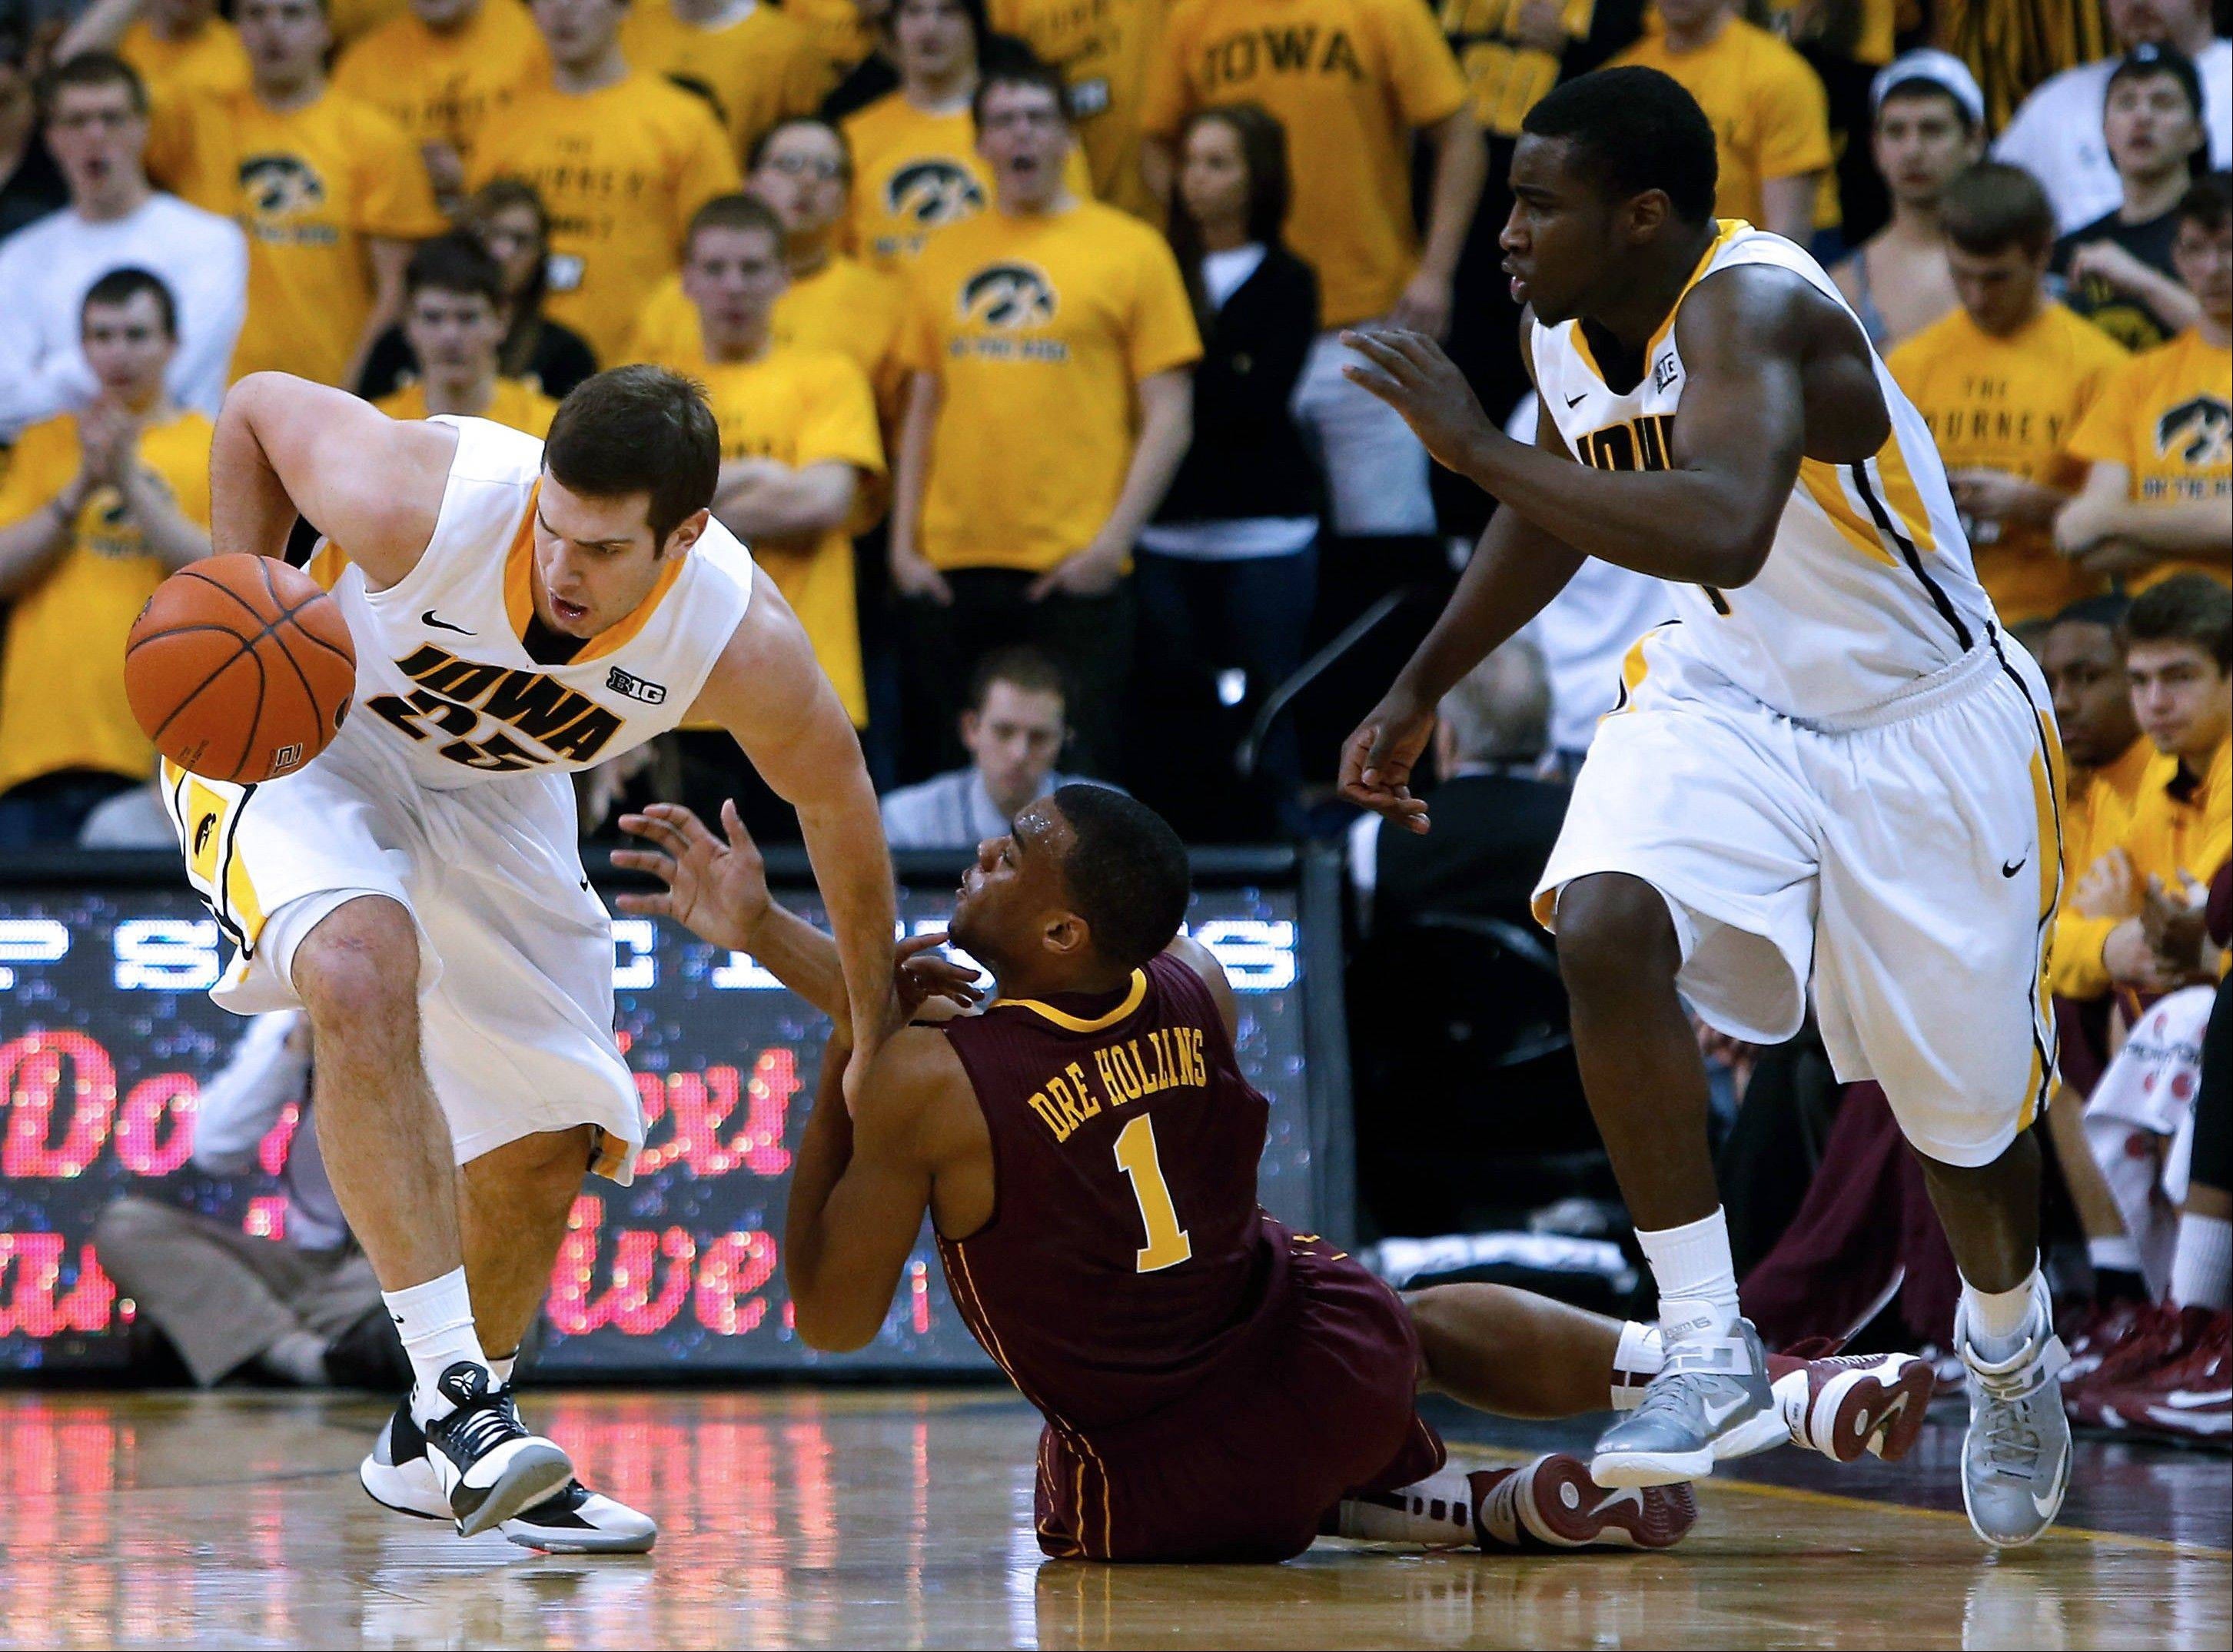 Iowa guard/forward Eric May (25) draws a foul as he steals the ball from Minnesota guard Andre Hollins (1) during the second half Sunday in Iowa City, Iowa.